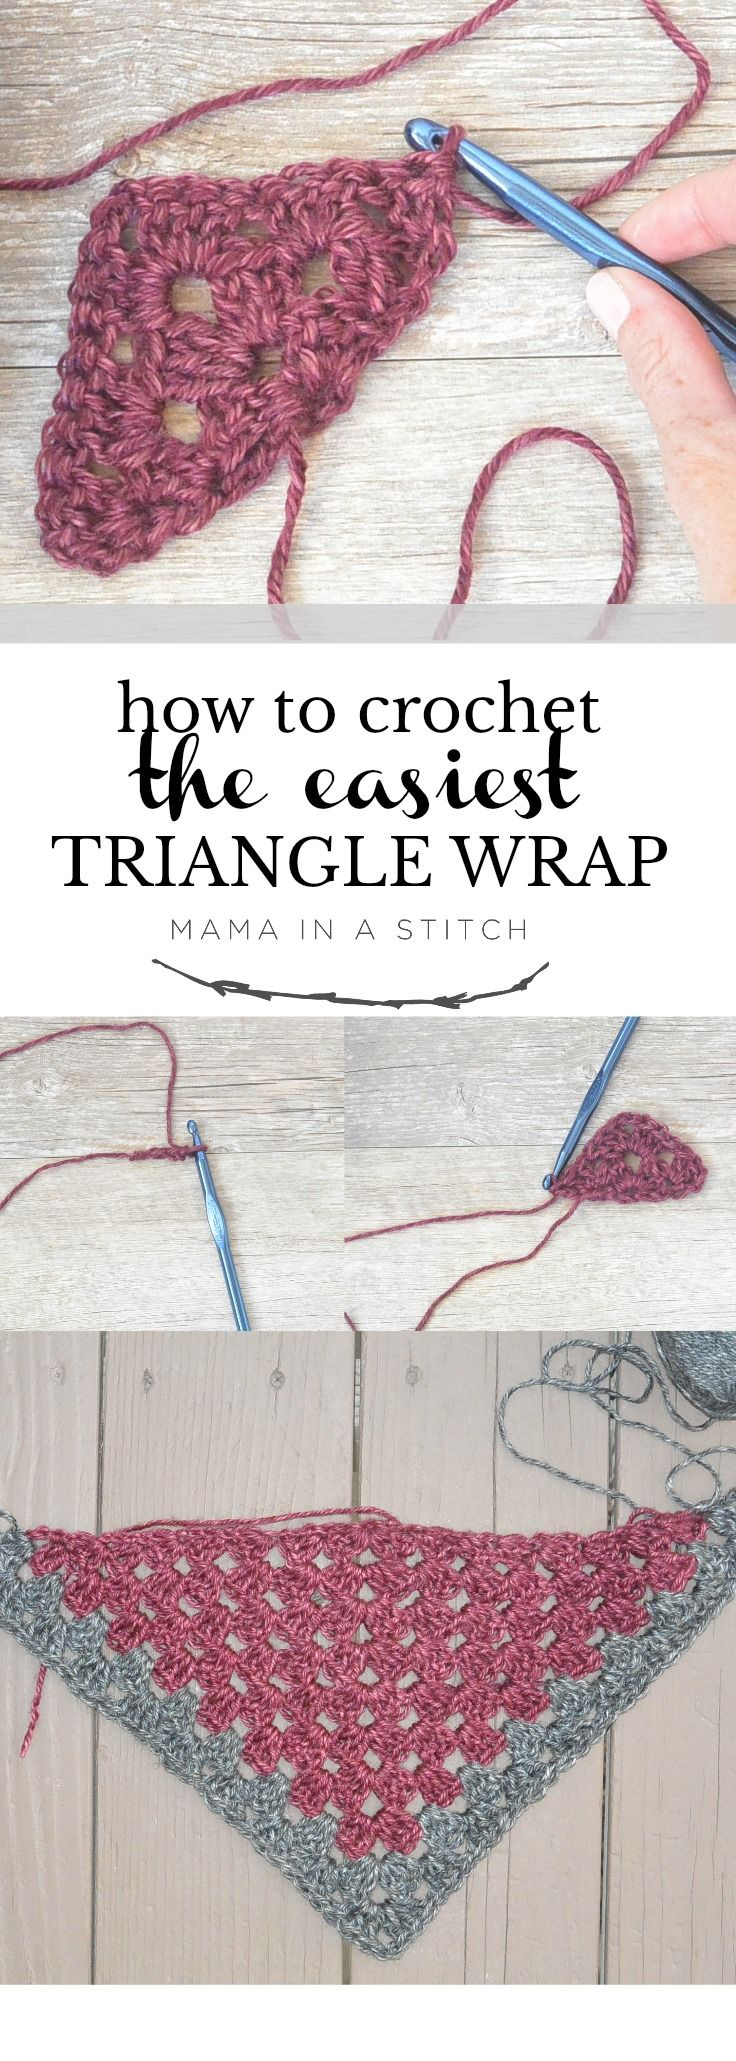 How To Crochet An Easy Granny Triangle | Chal, Ganchillo y Tejido